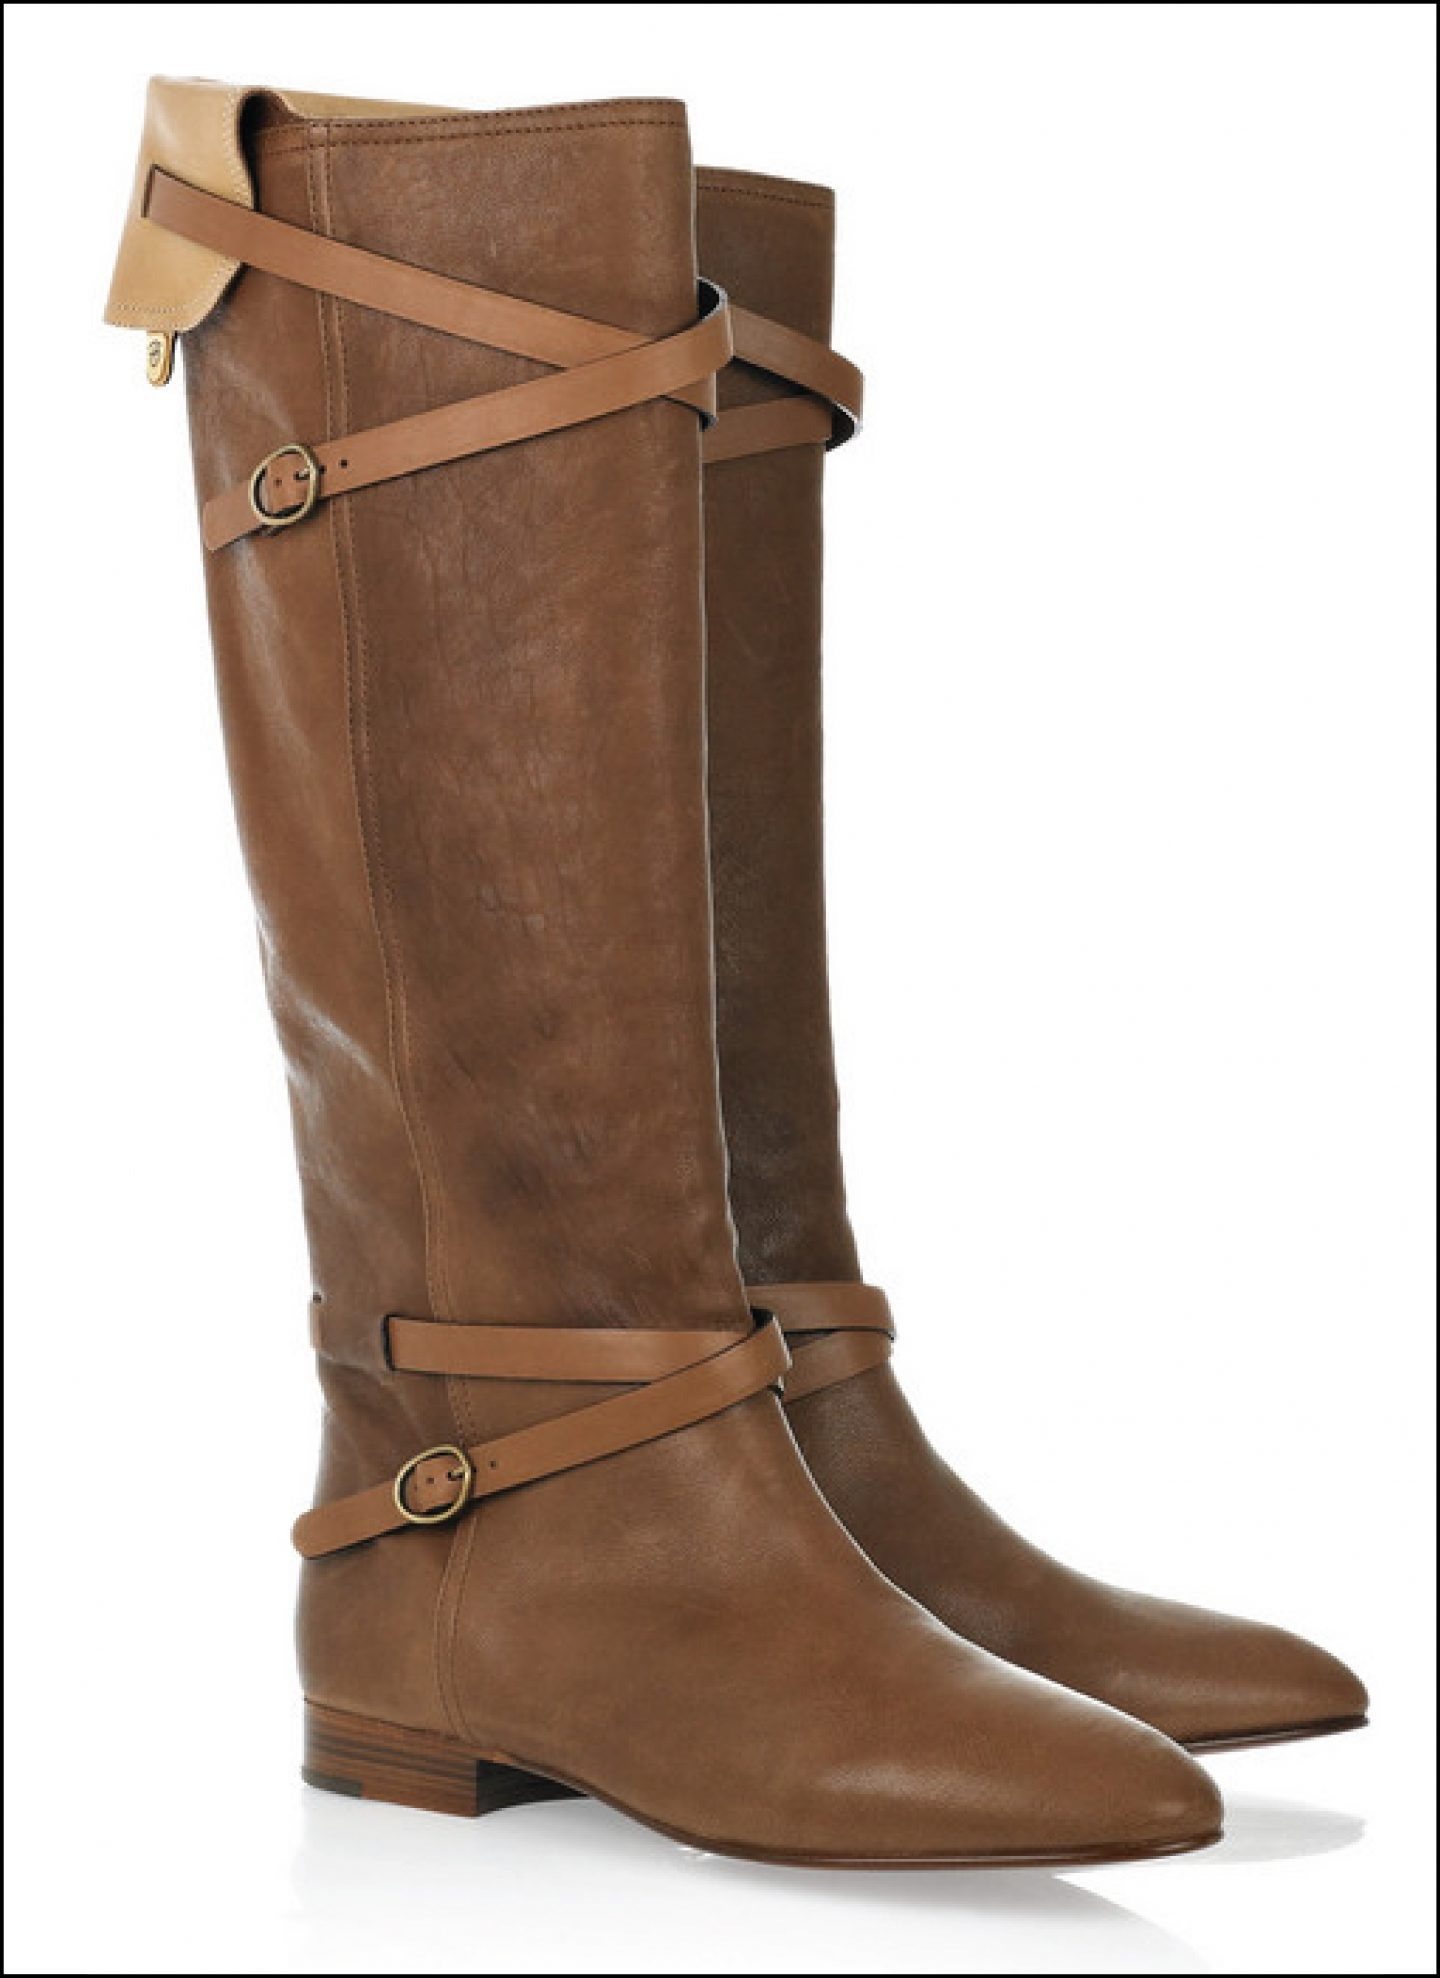 For The Love Of Shoes: Brown Boots for Fall